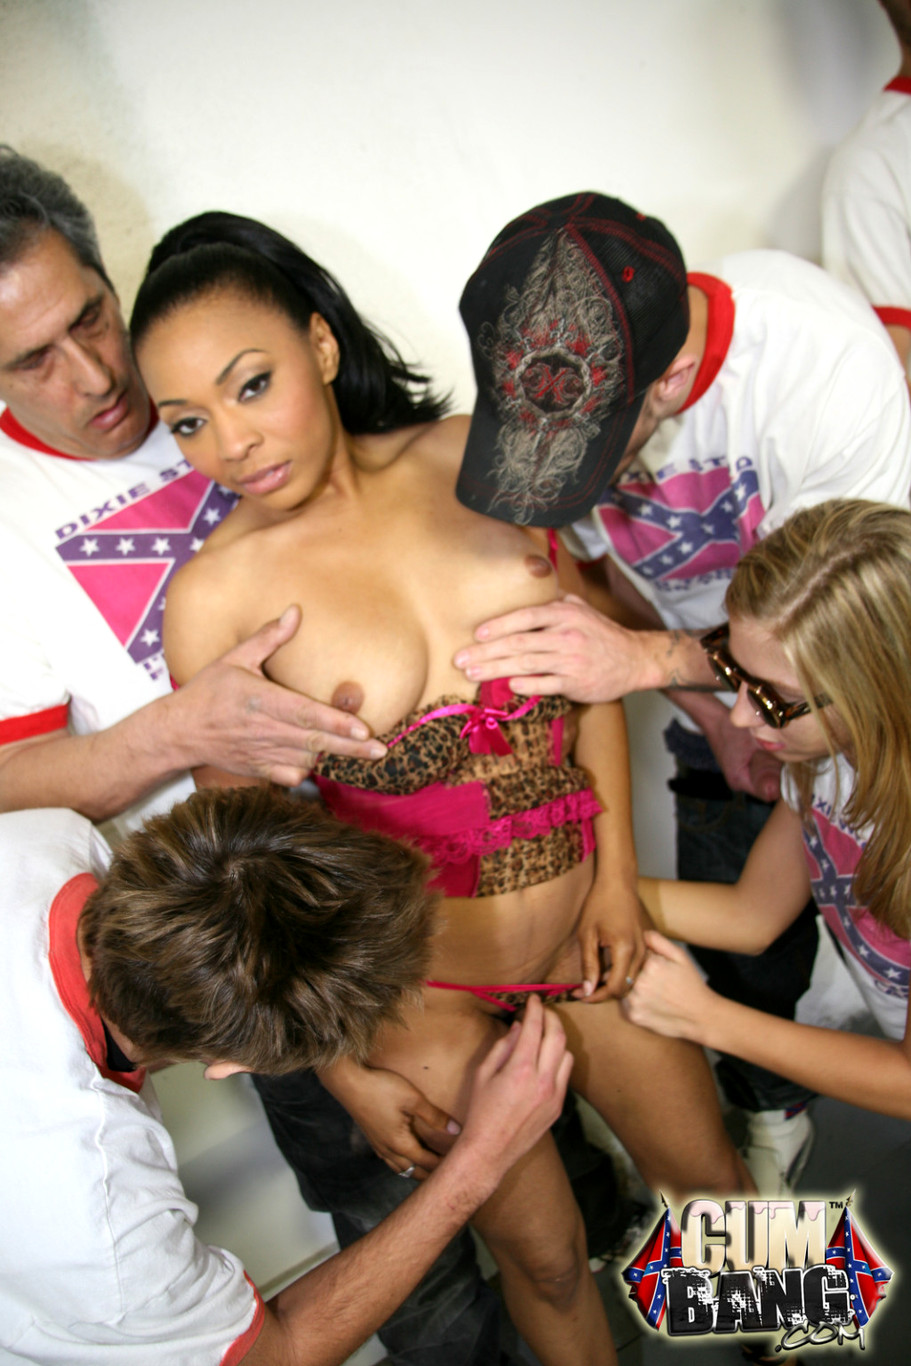 Anita peida gets revenge on her parents with gangbang